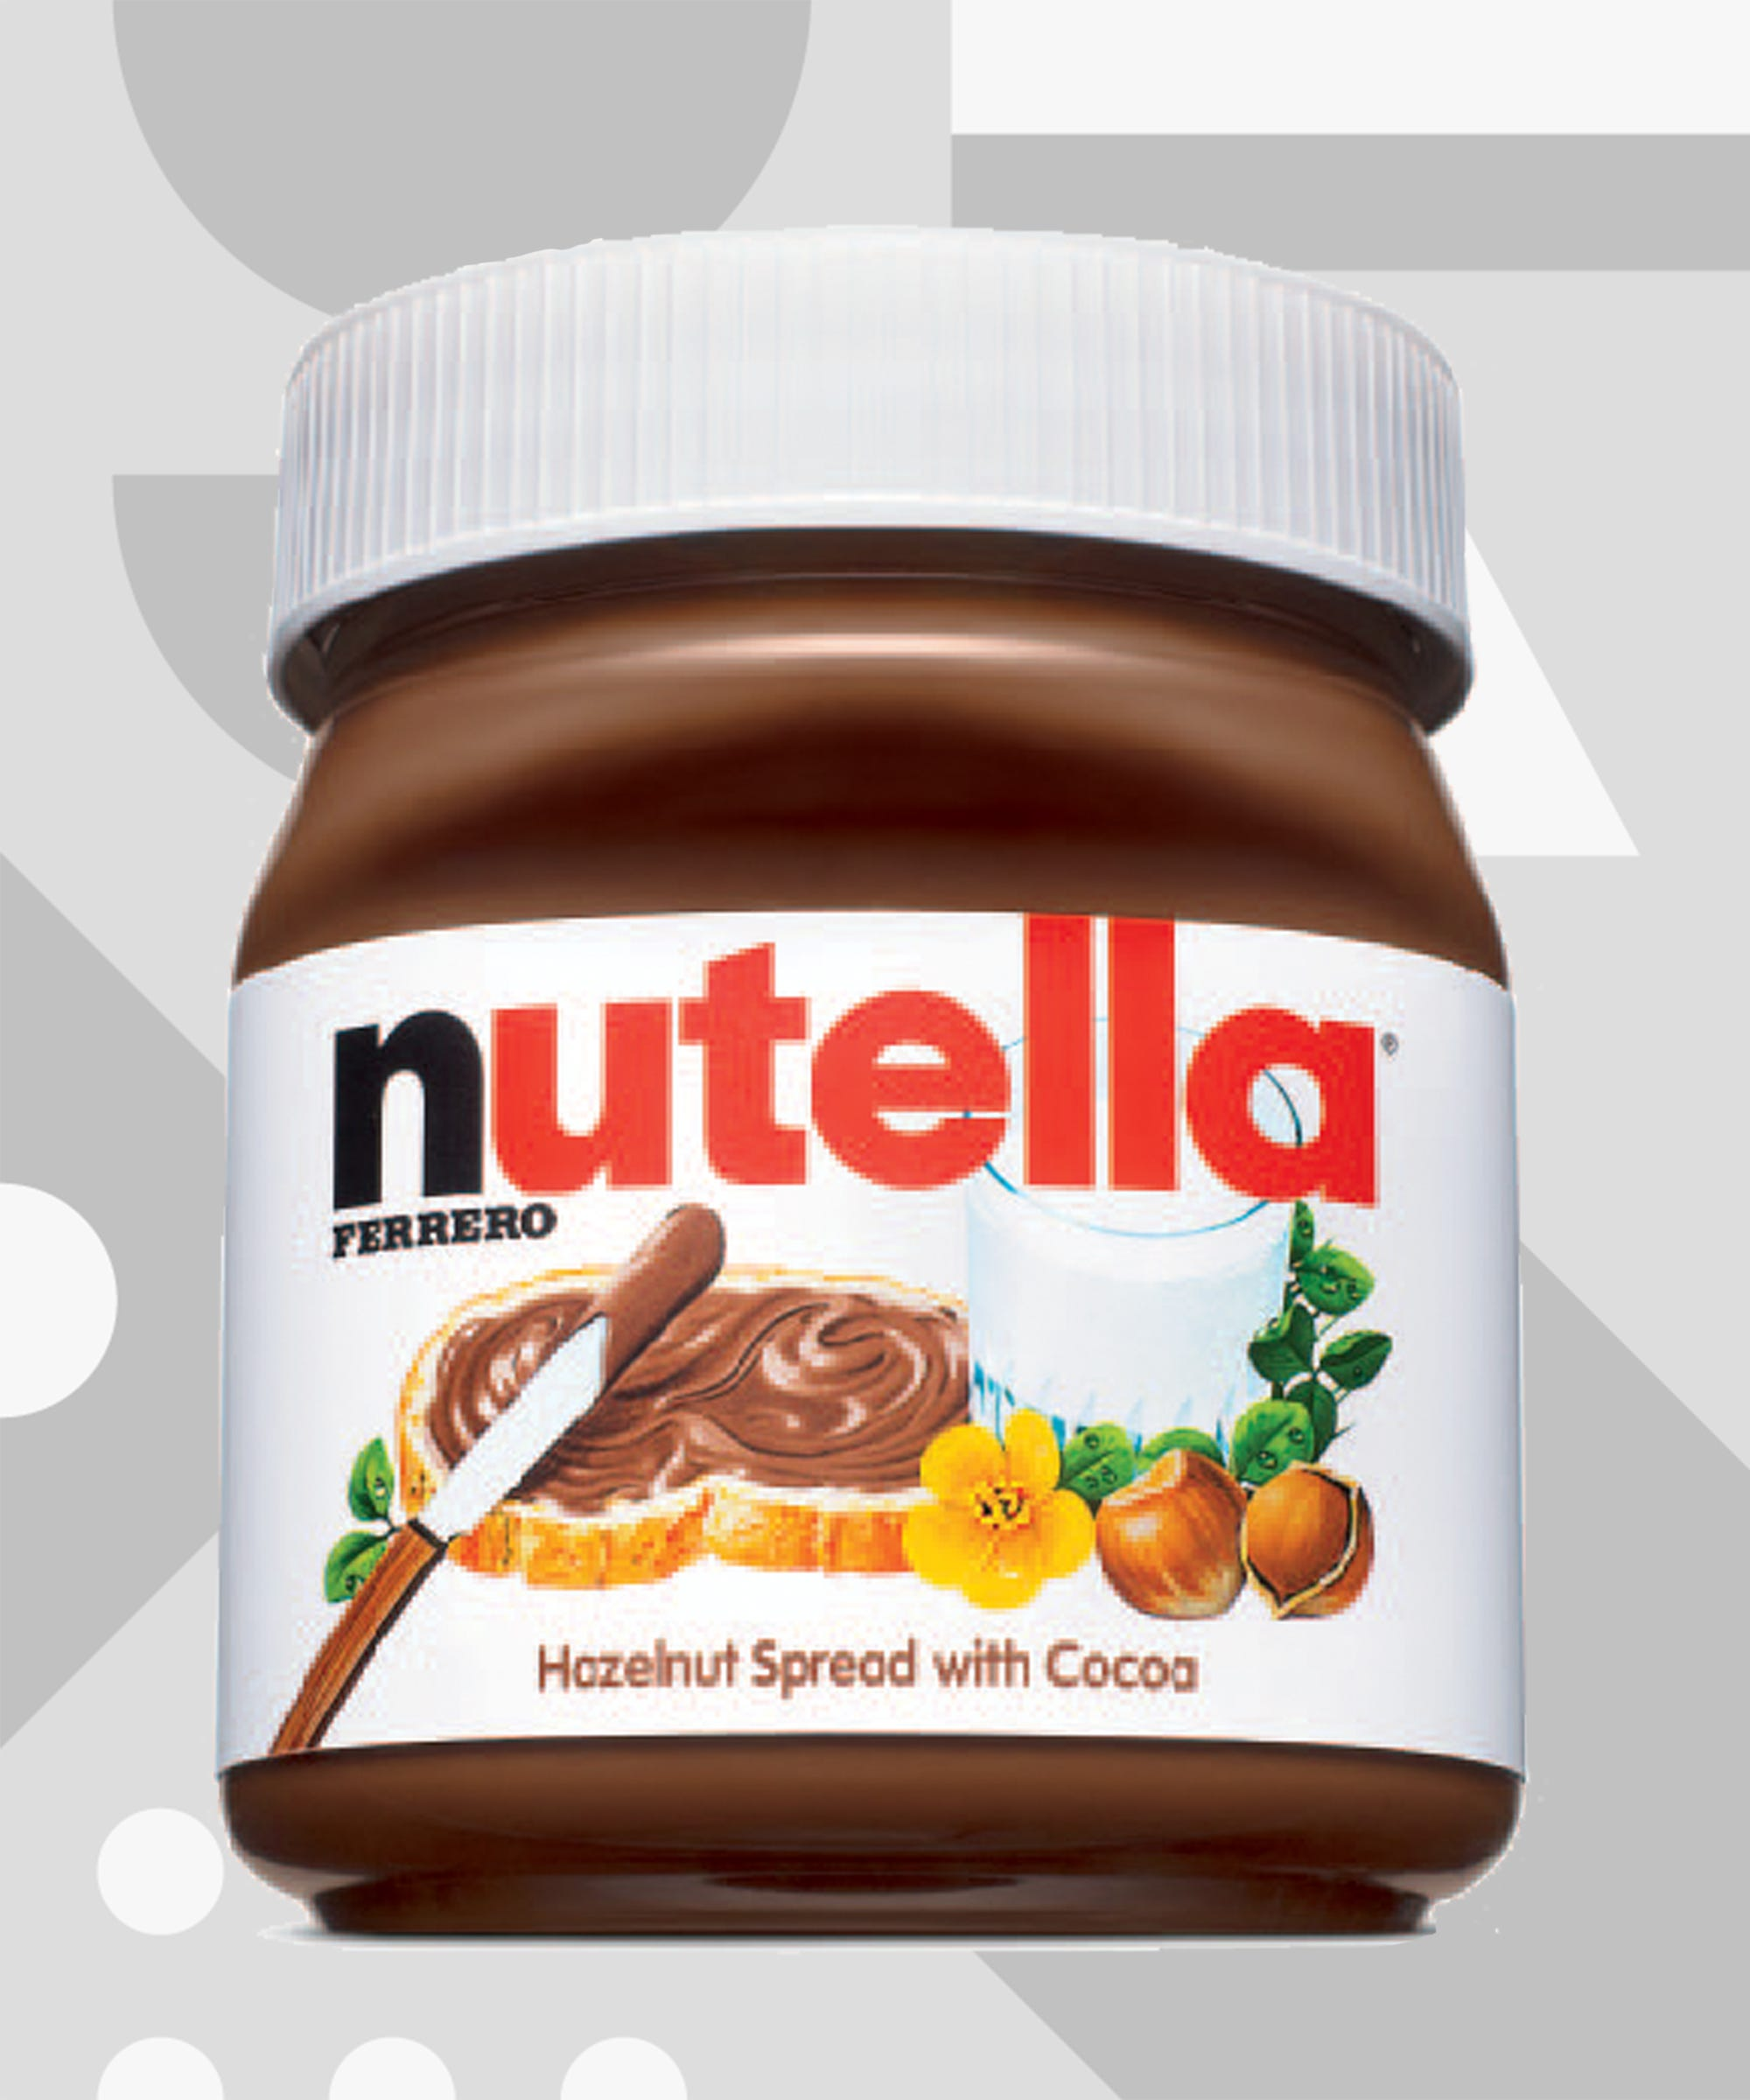 10 Surprising Facts About Nutella